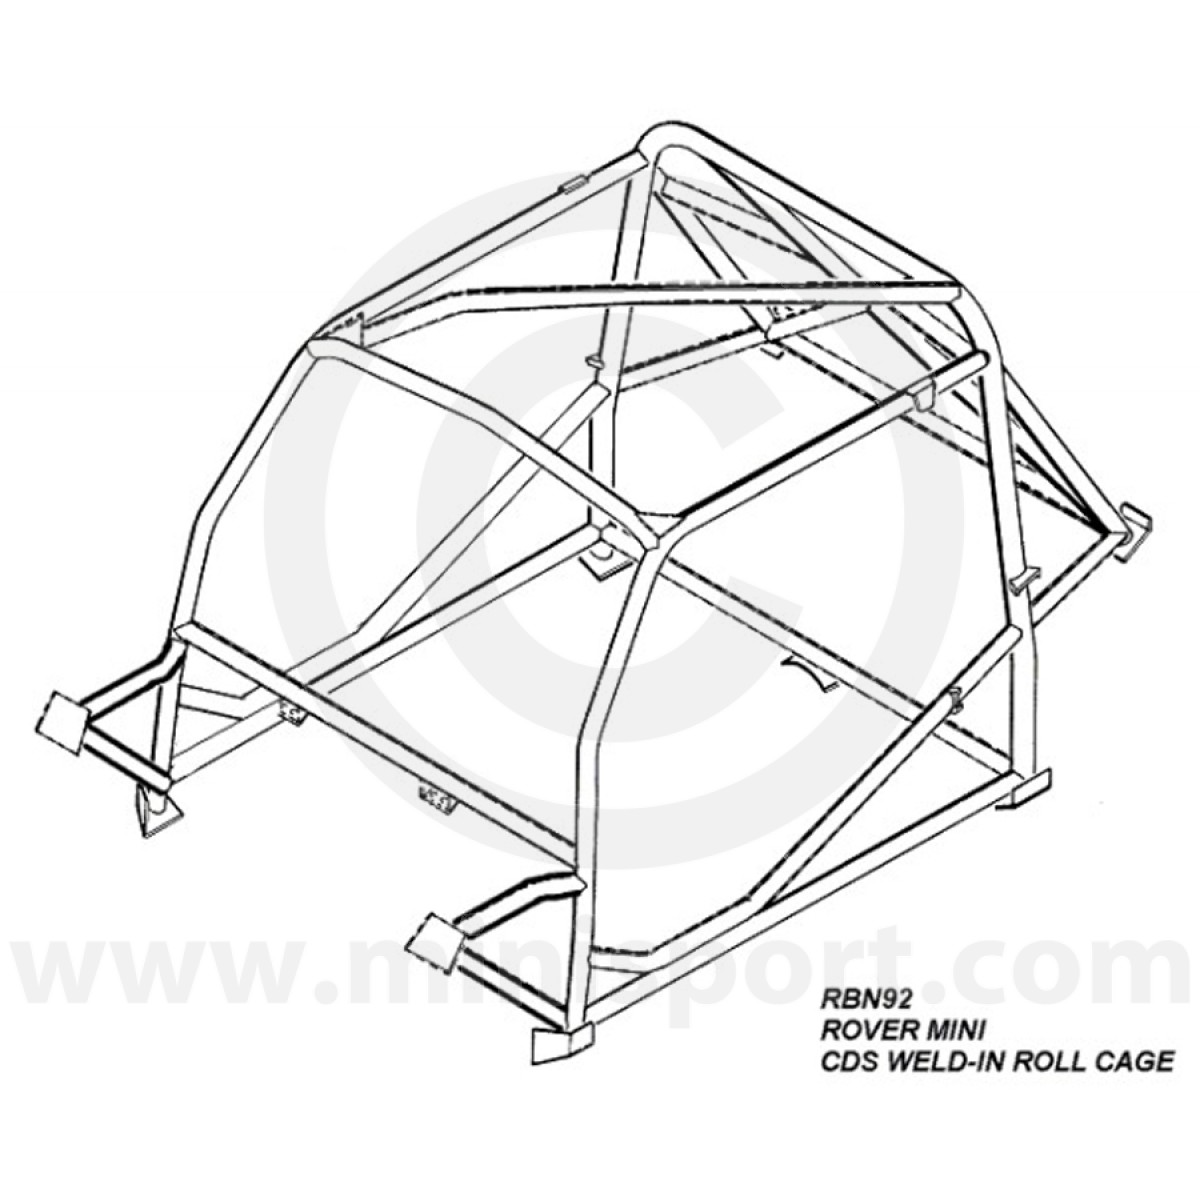 1200x1200 Rbn926ssu Mini Weld In Roll Cage Safety Devices